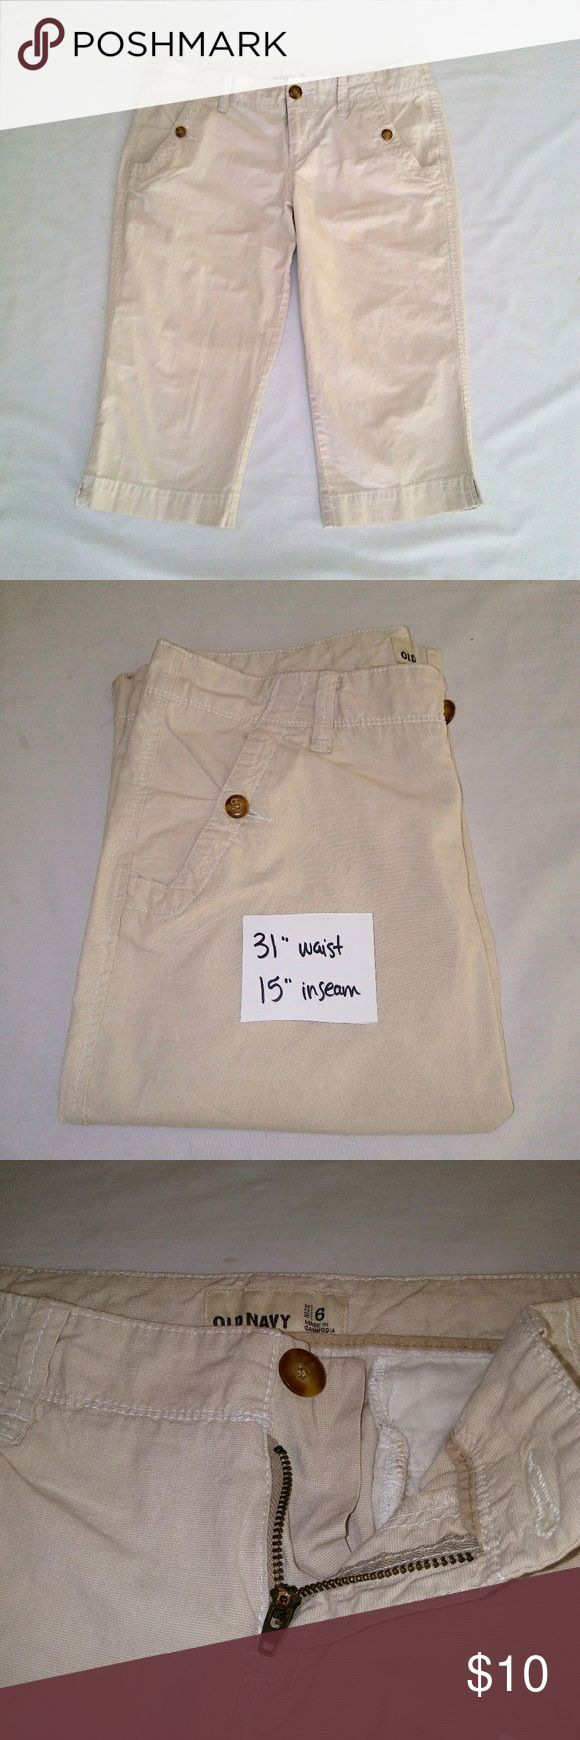 OLD Navy Lt. Khaki Capris Slightly Stretchy Lightweight Cream Colored Khaki Old Navy Capris with Button Pockets. Women's 6. In excellent used condition. From a smoke free home. Make an offer! BUNDLE & Automatically Get 20% Off on 2+ Items.  New Feature Alert: Bundle one or more items and I'll make you a customized awesome offer! Just bundle and wait for my offer... Up to 40% off - the bigger the bundle the bigger the savings! *2017 SUGGESTED USER* Old Navy Pants Capris